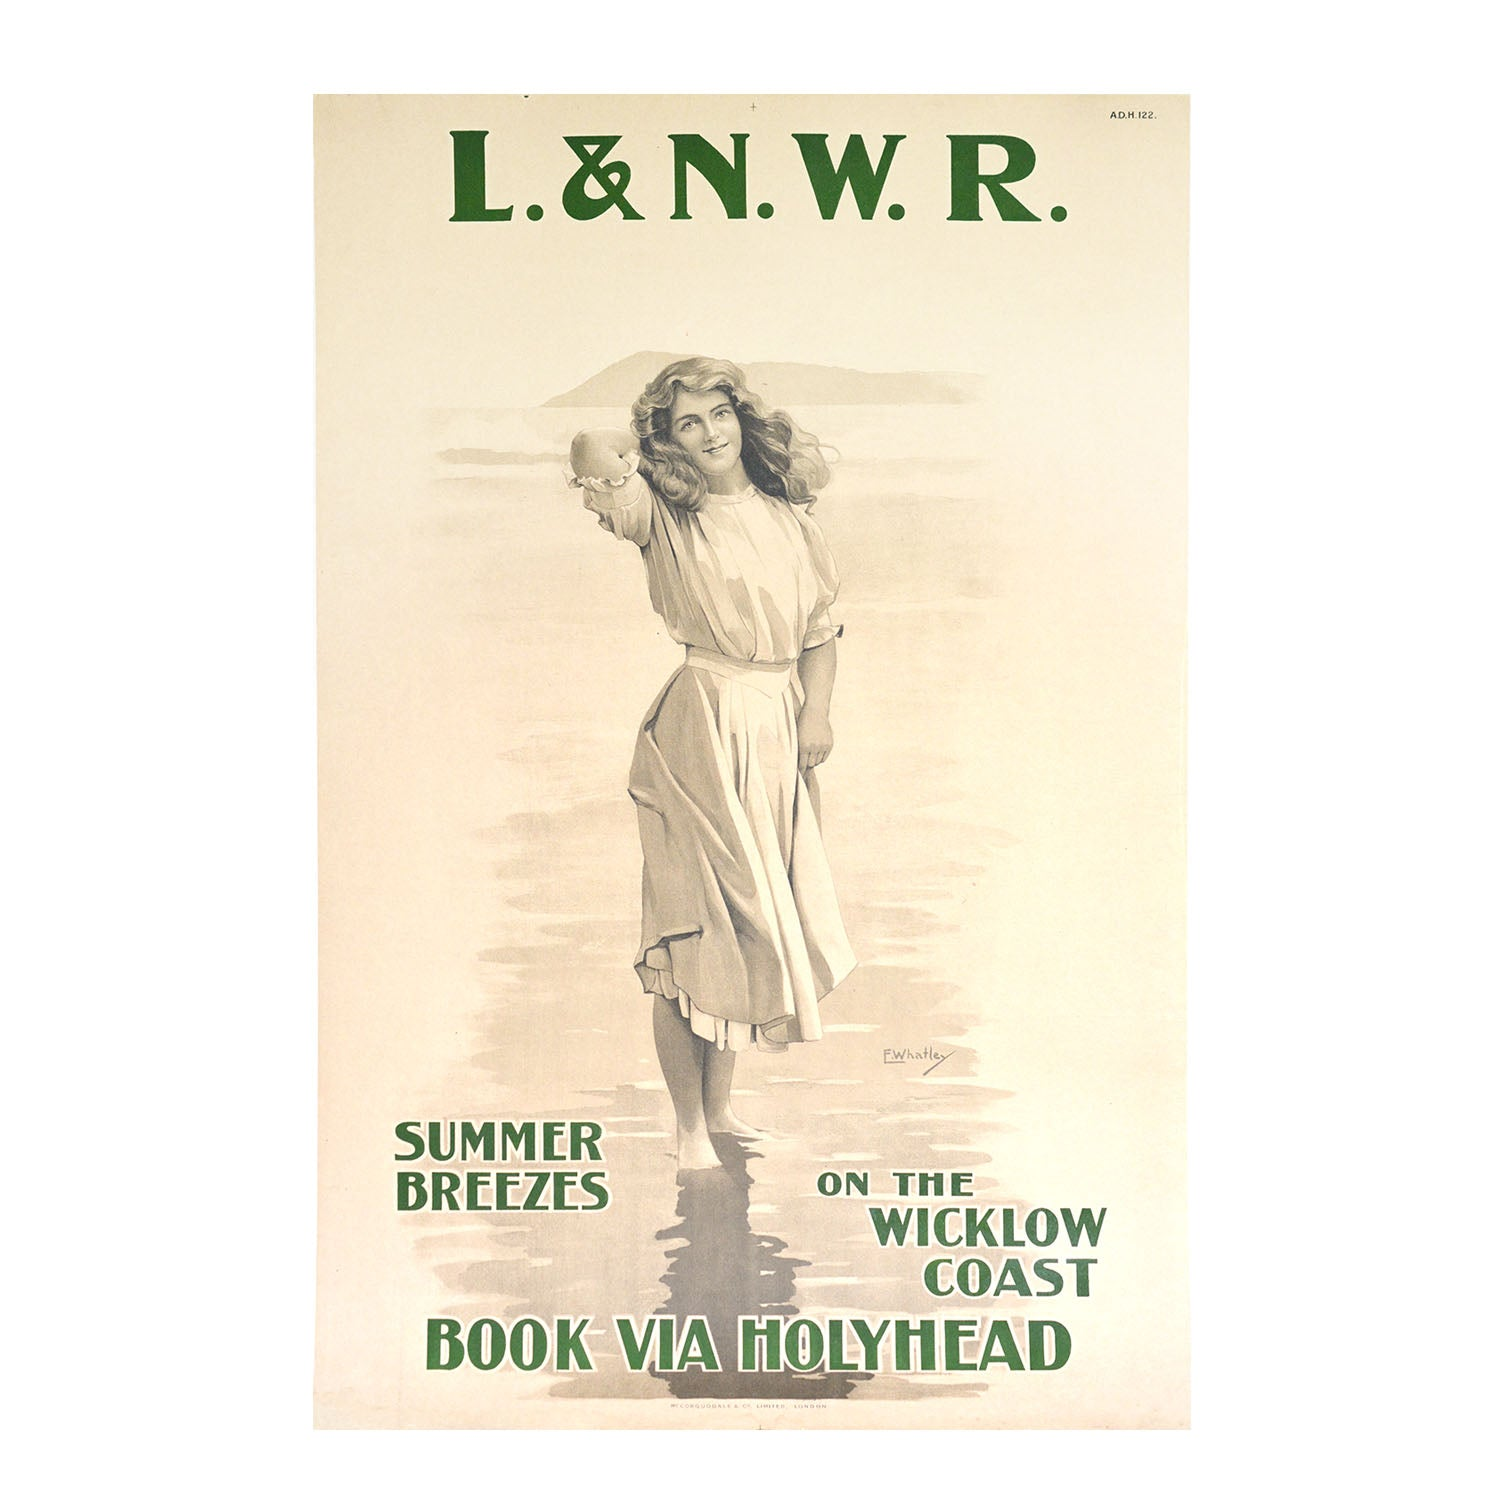 British railway poster, published by the London & North Western Railway (LNWR) for Wicklow on the east coast of Ireland